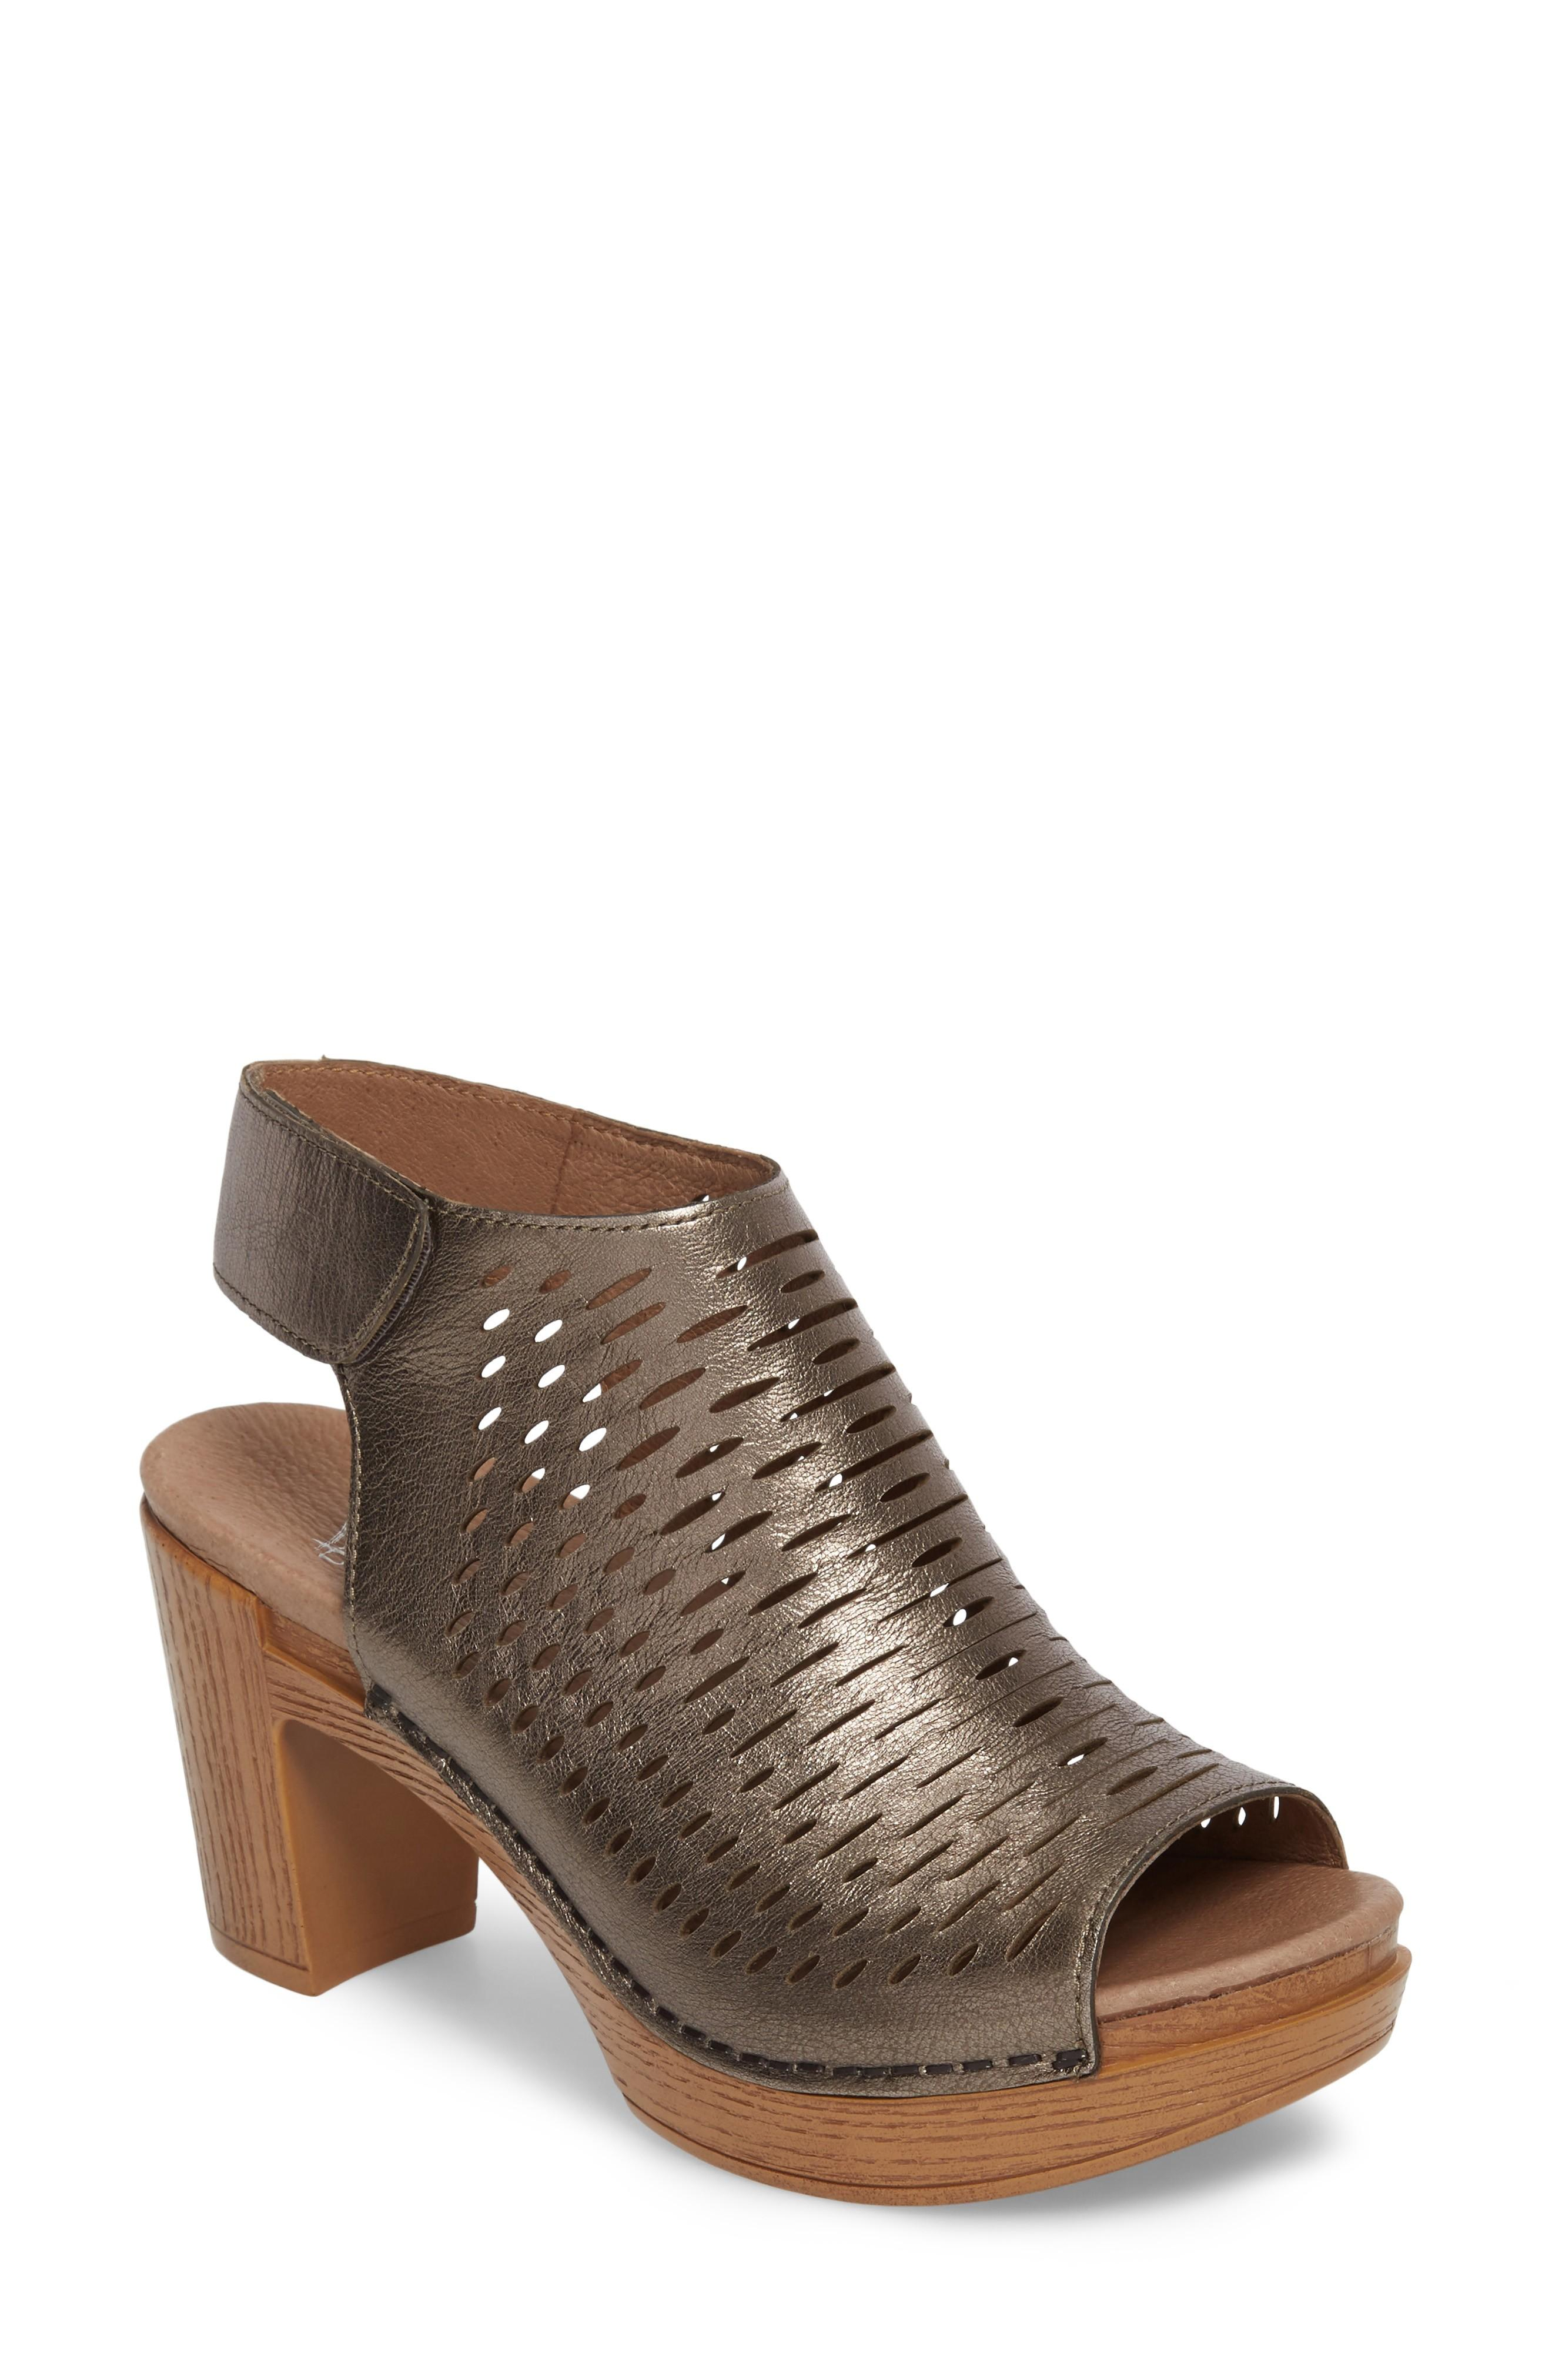 4125b3aa0bf A woodgrain block heel and rocker platform helps to propel your foot  forward naturally with every step you take in this chic sandal fashioned  with a breezy